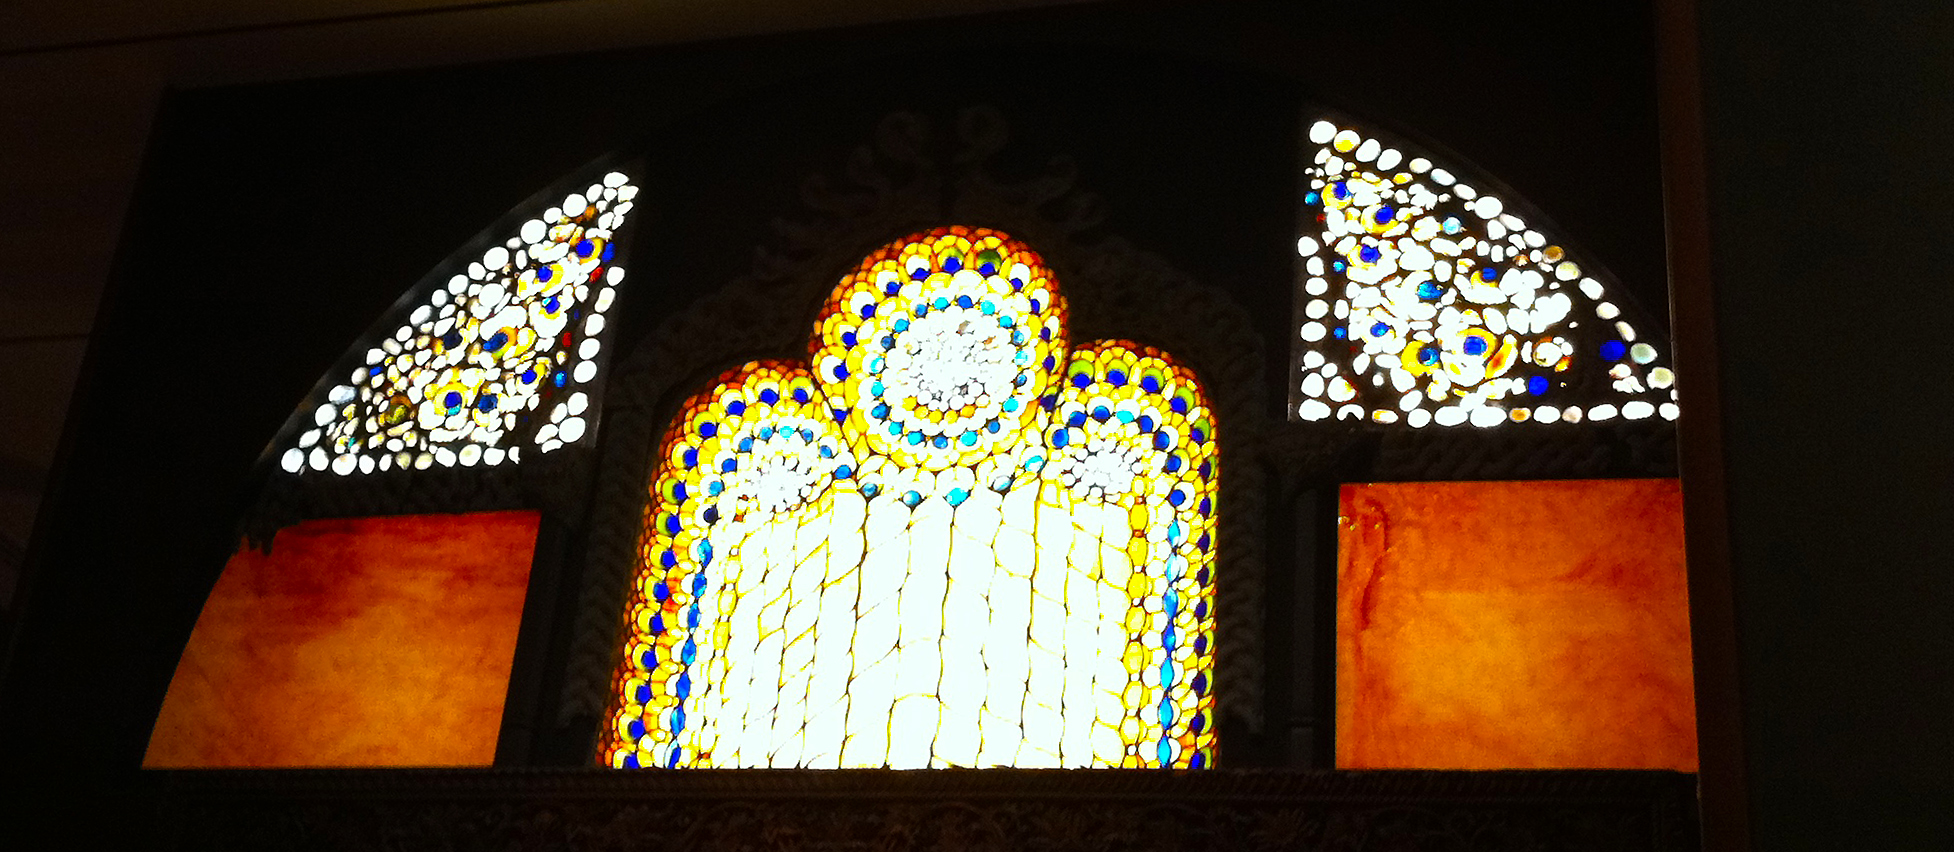 Tiffany Stained Glass : Tiffany collection at morse museum naturetime